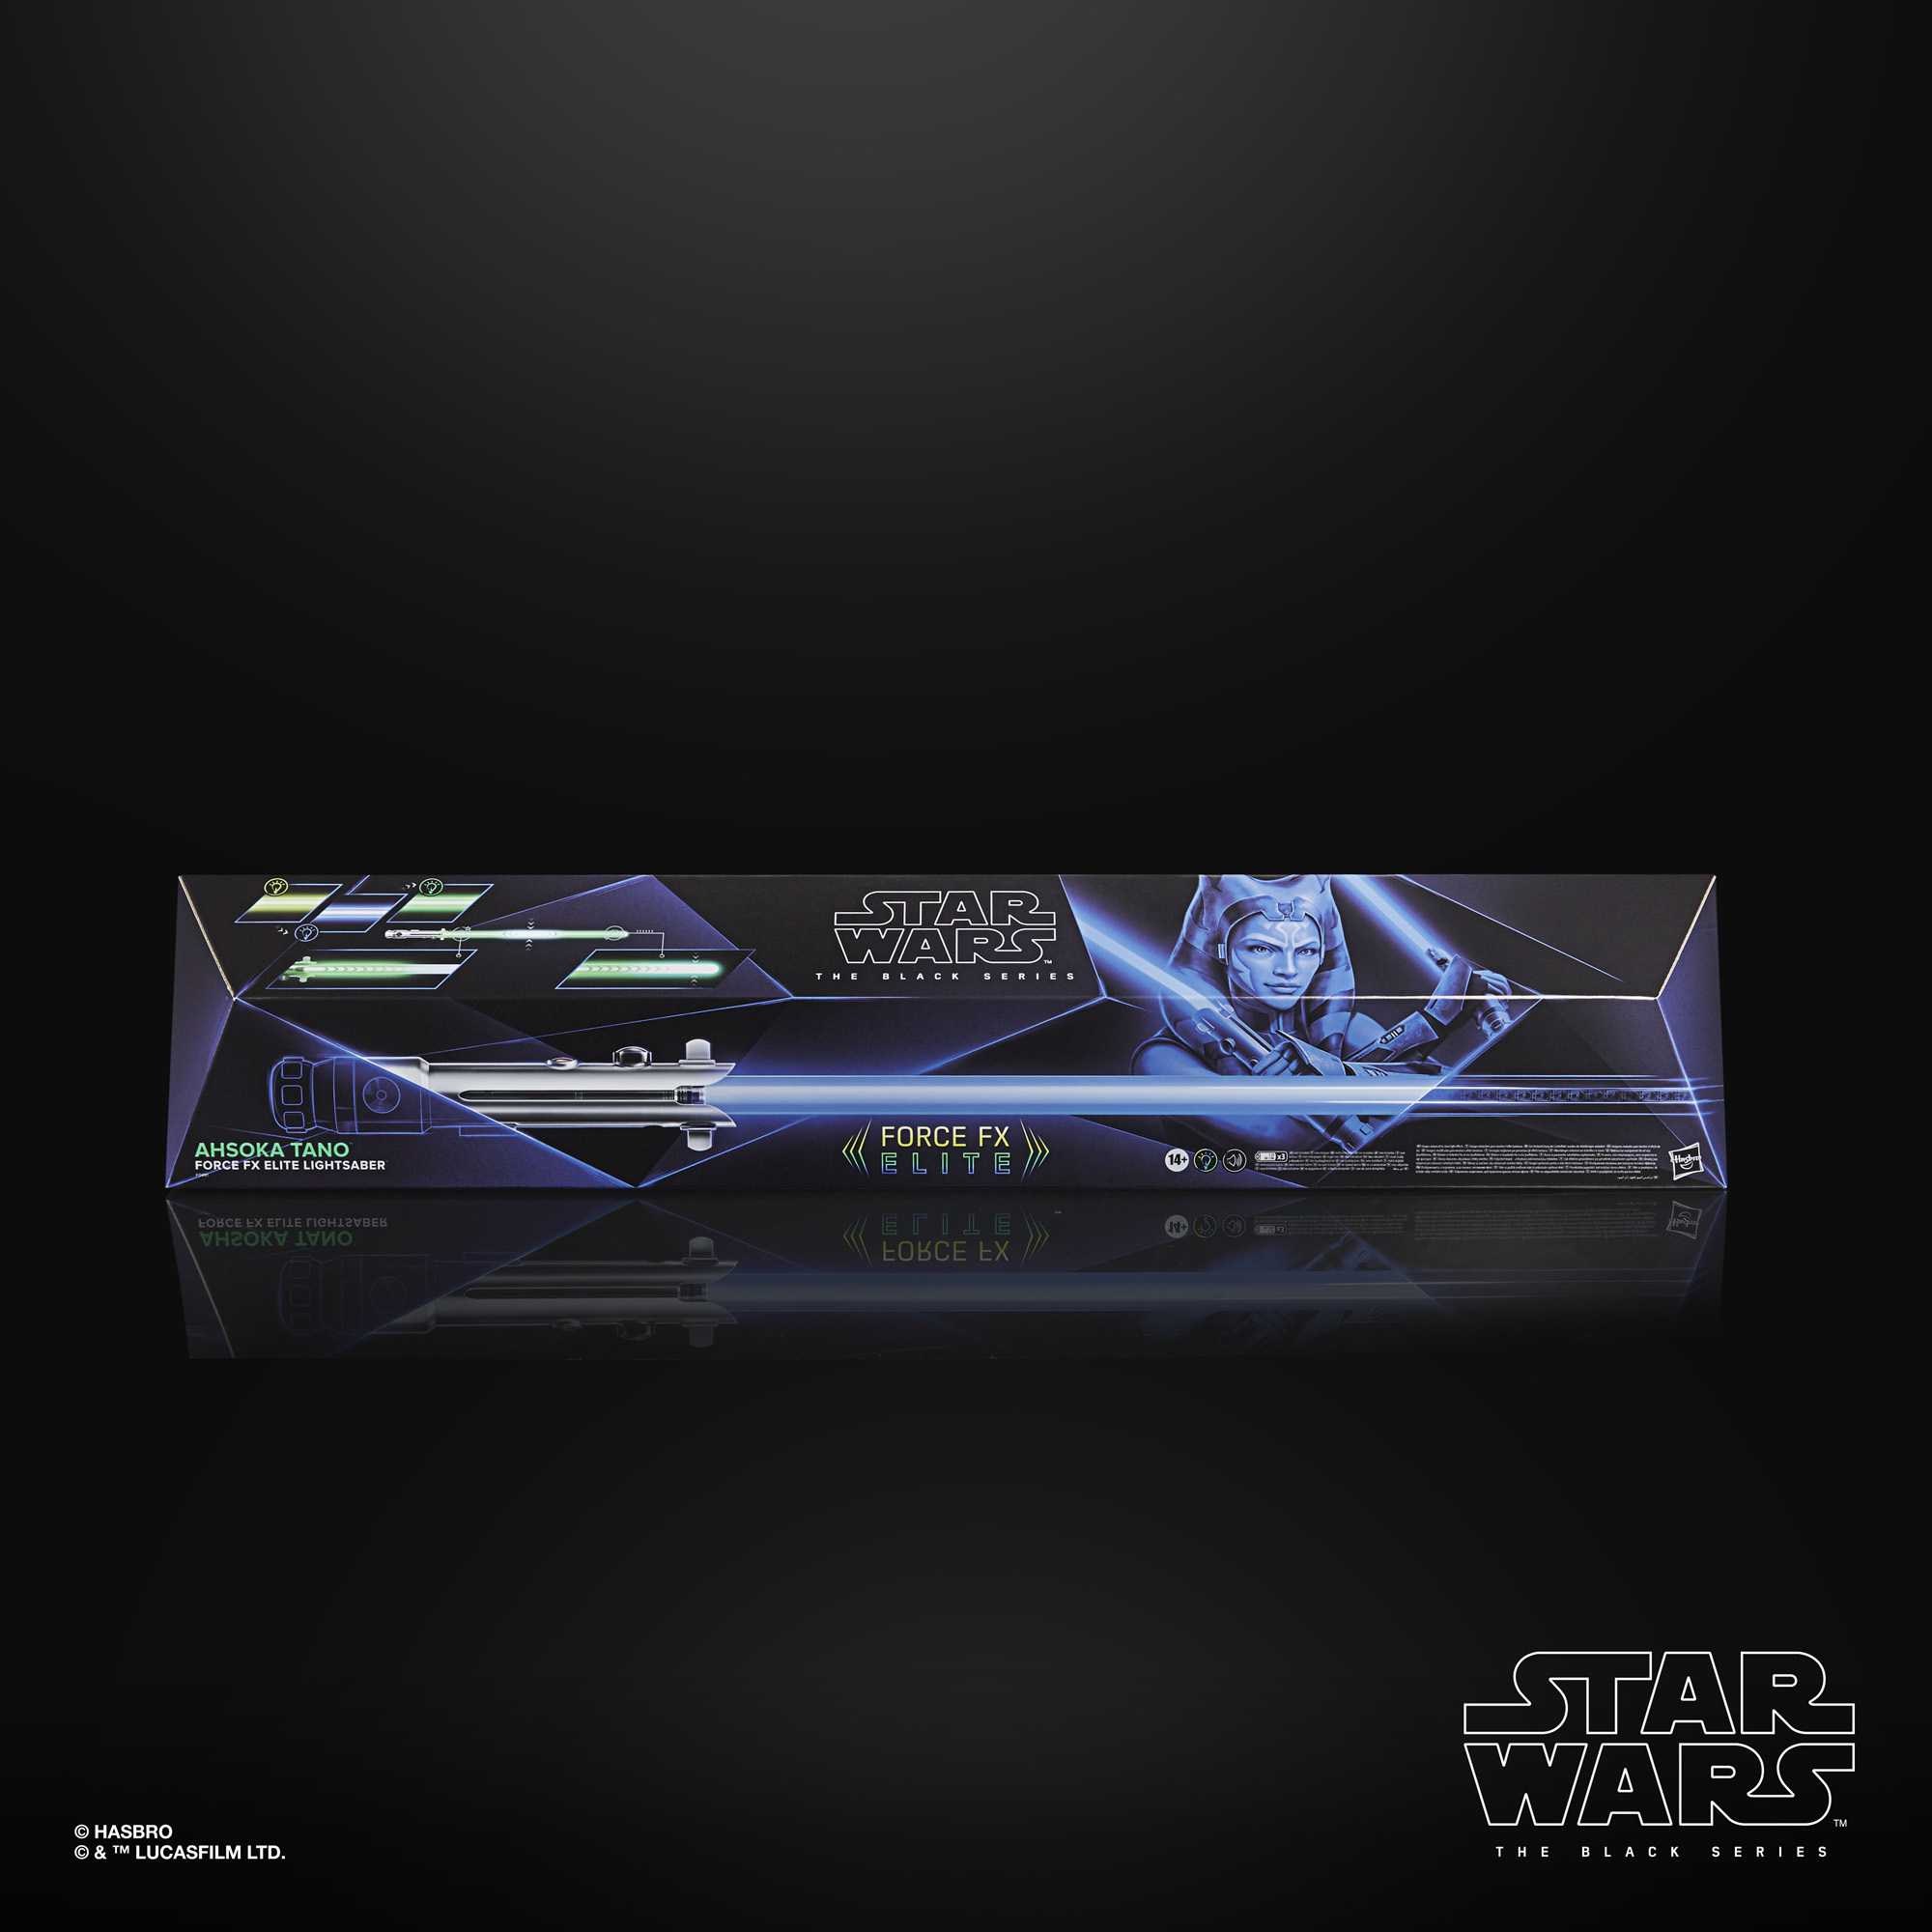 Star Wars The Black Series Ahsoka Tano Force FX Elite Lightsaber F04915L0 5010993802418